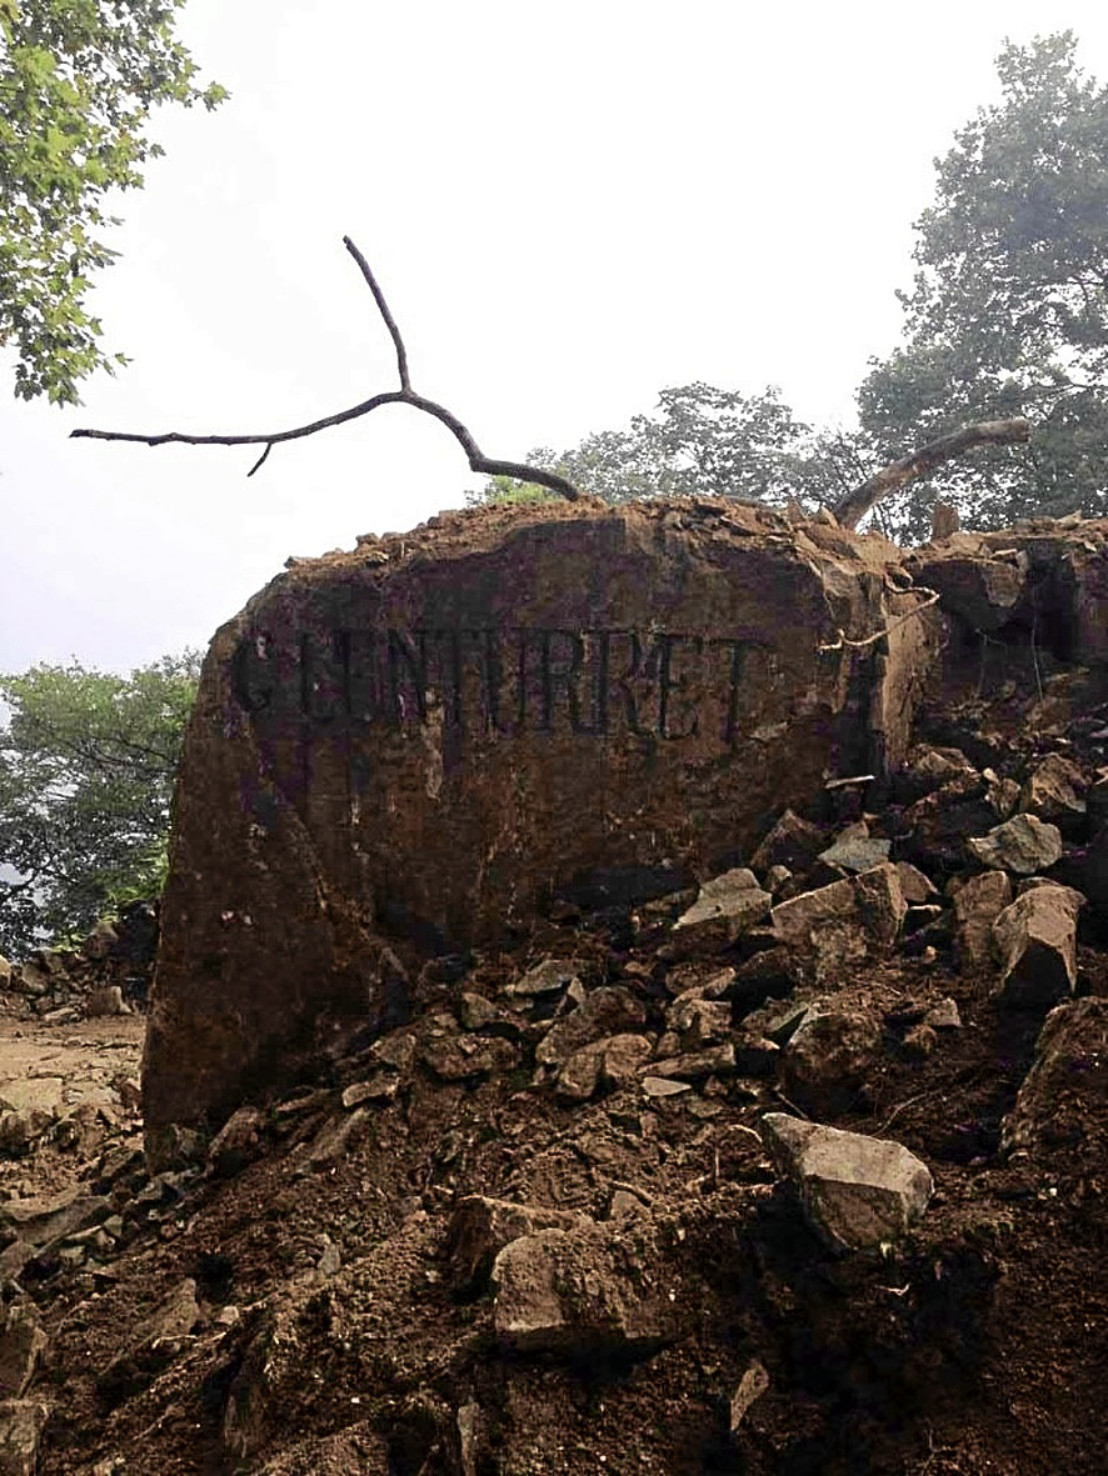 Theories on how the name came to be carved on the rock have come in from around the world